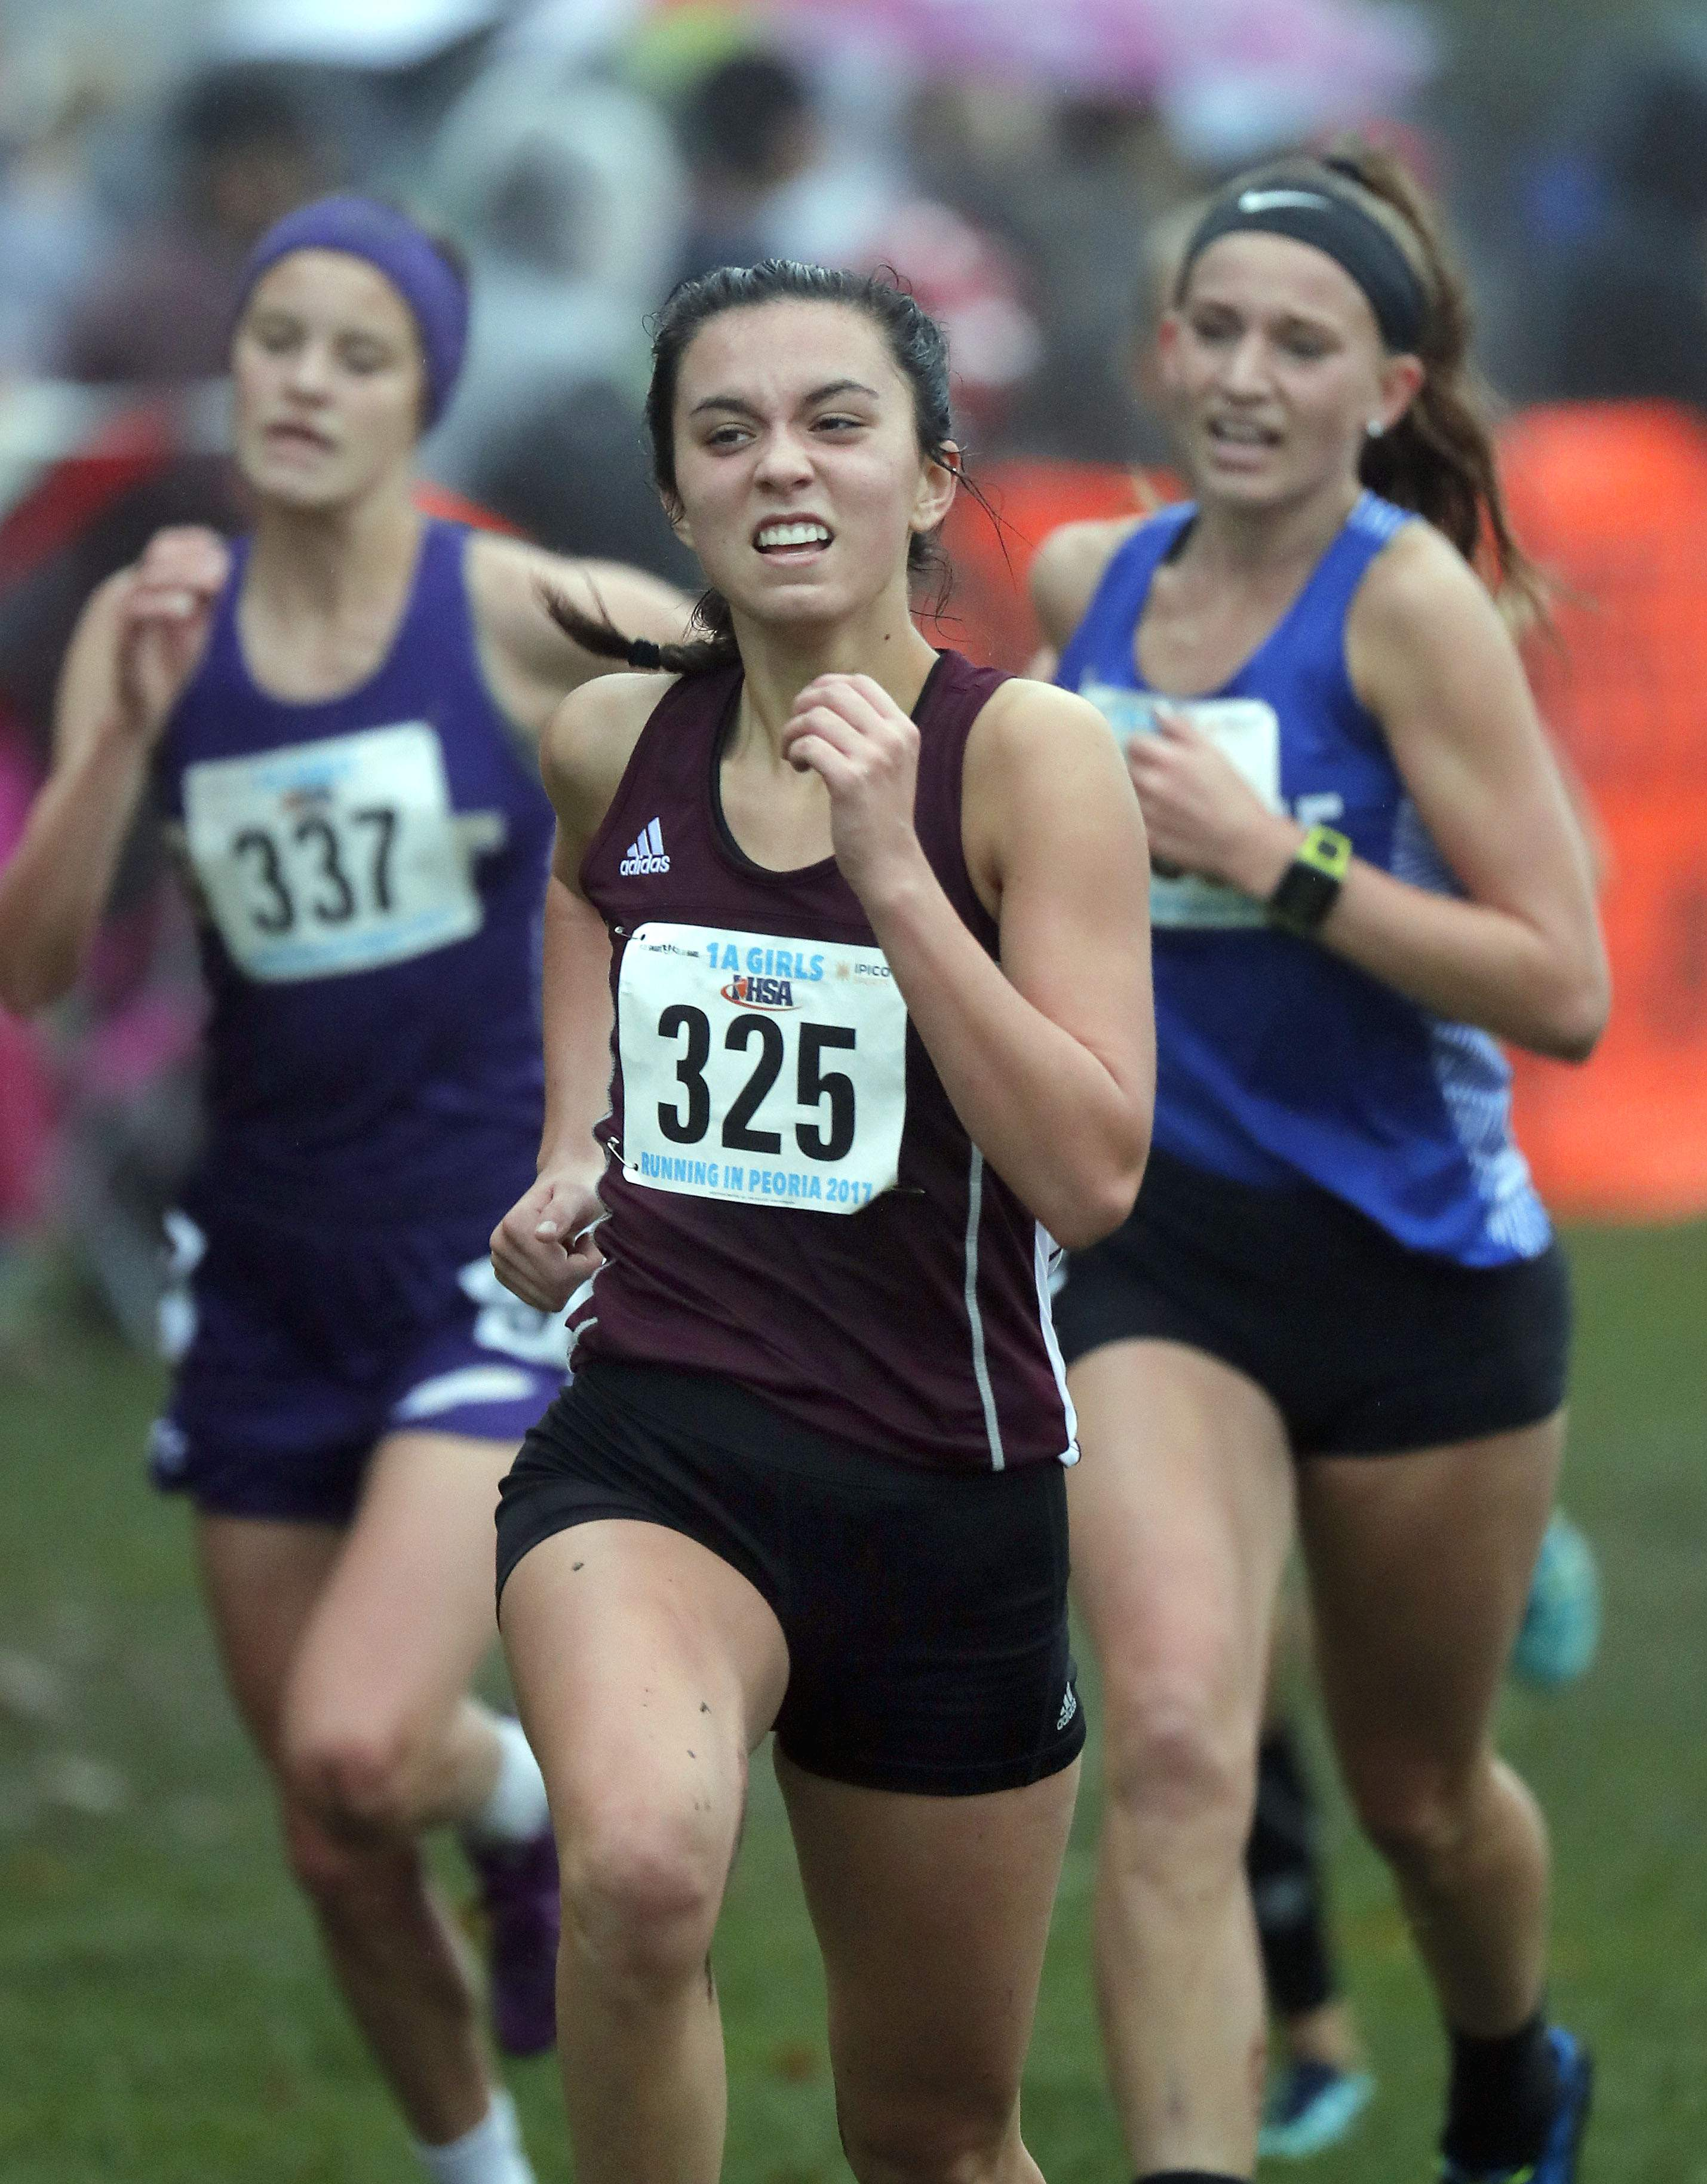 Benton's Amelia McLain heads to the finish line - and 9th place - during girls Class 1A cross-country finals Saturday in Peoria.